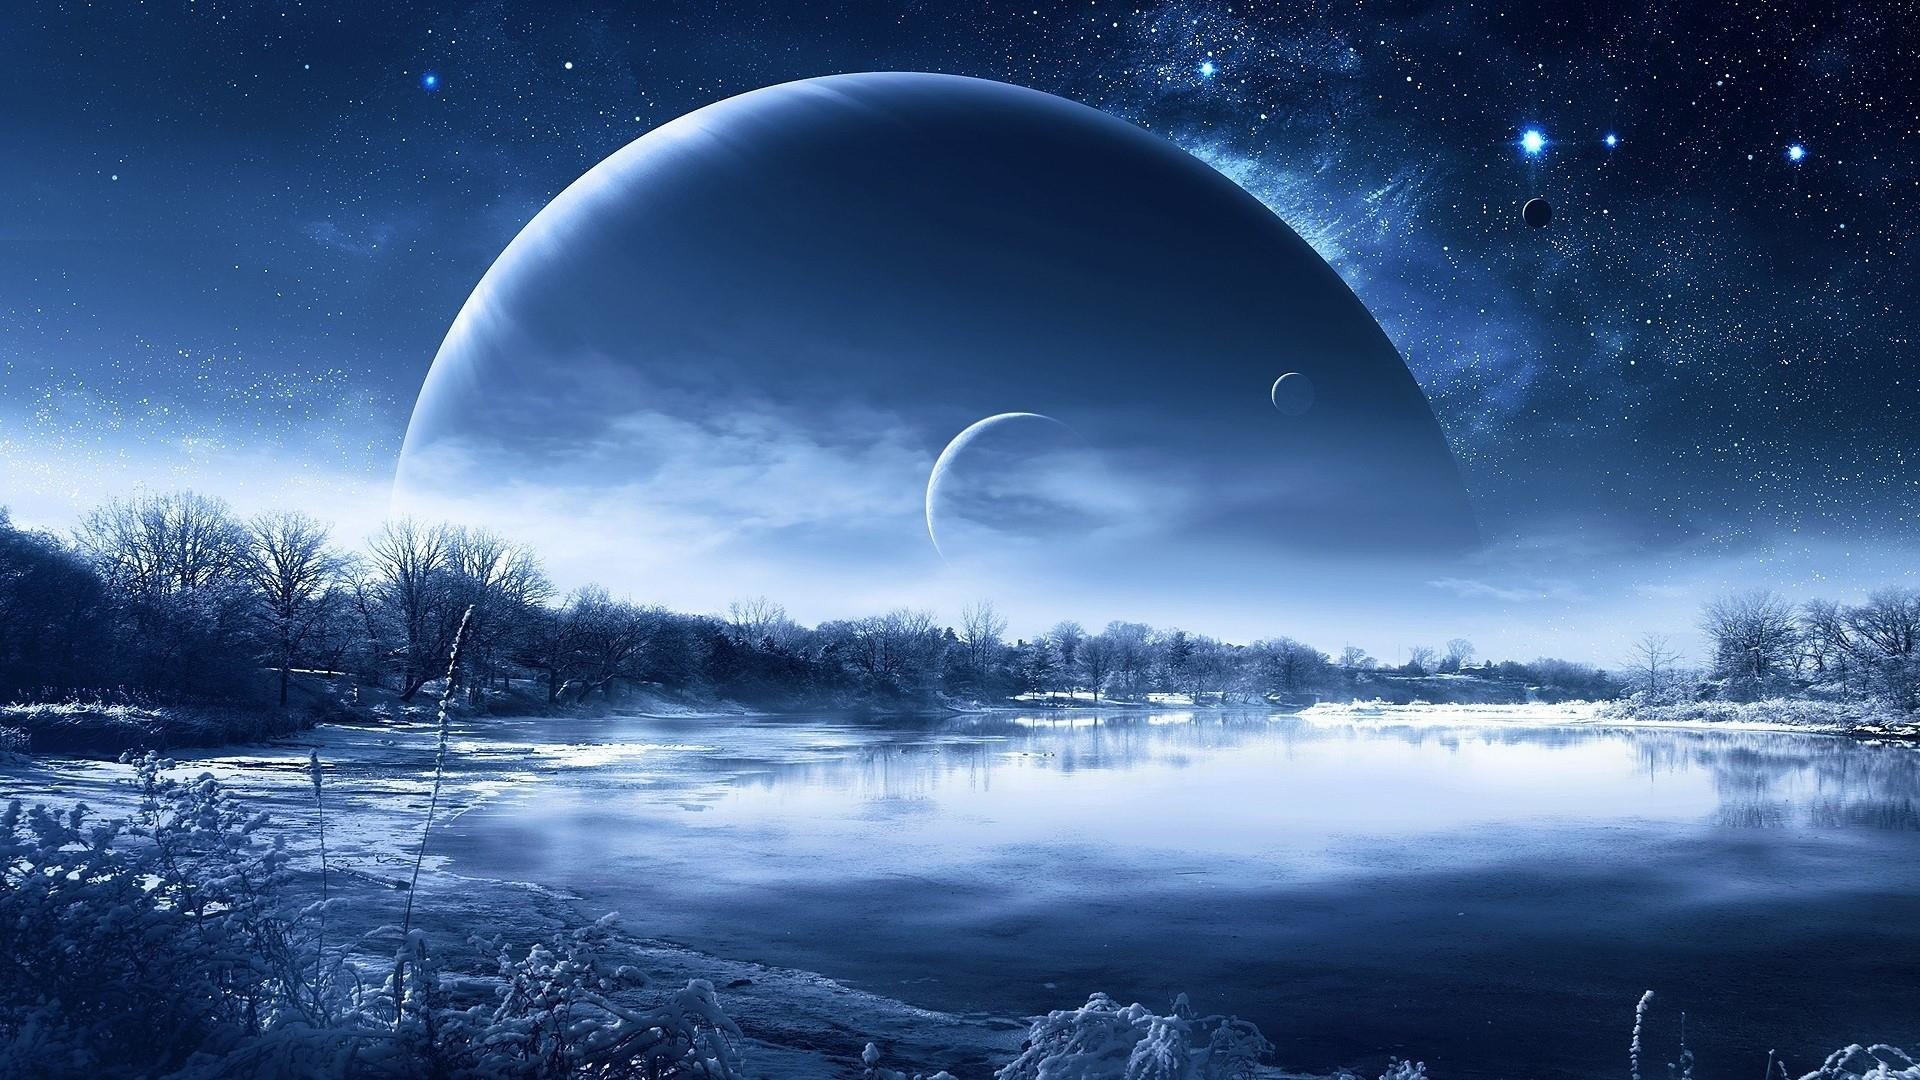 Res: 1920x1080, Fantasy Planet Above The Lake Wallpaper | Wallpaper Studio 10 | Tens of  thousands HD and UltraHD wallpapers for Android, Windows and Xbox